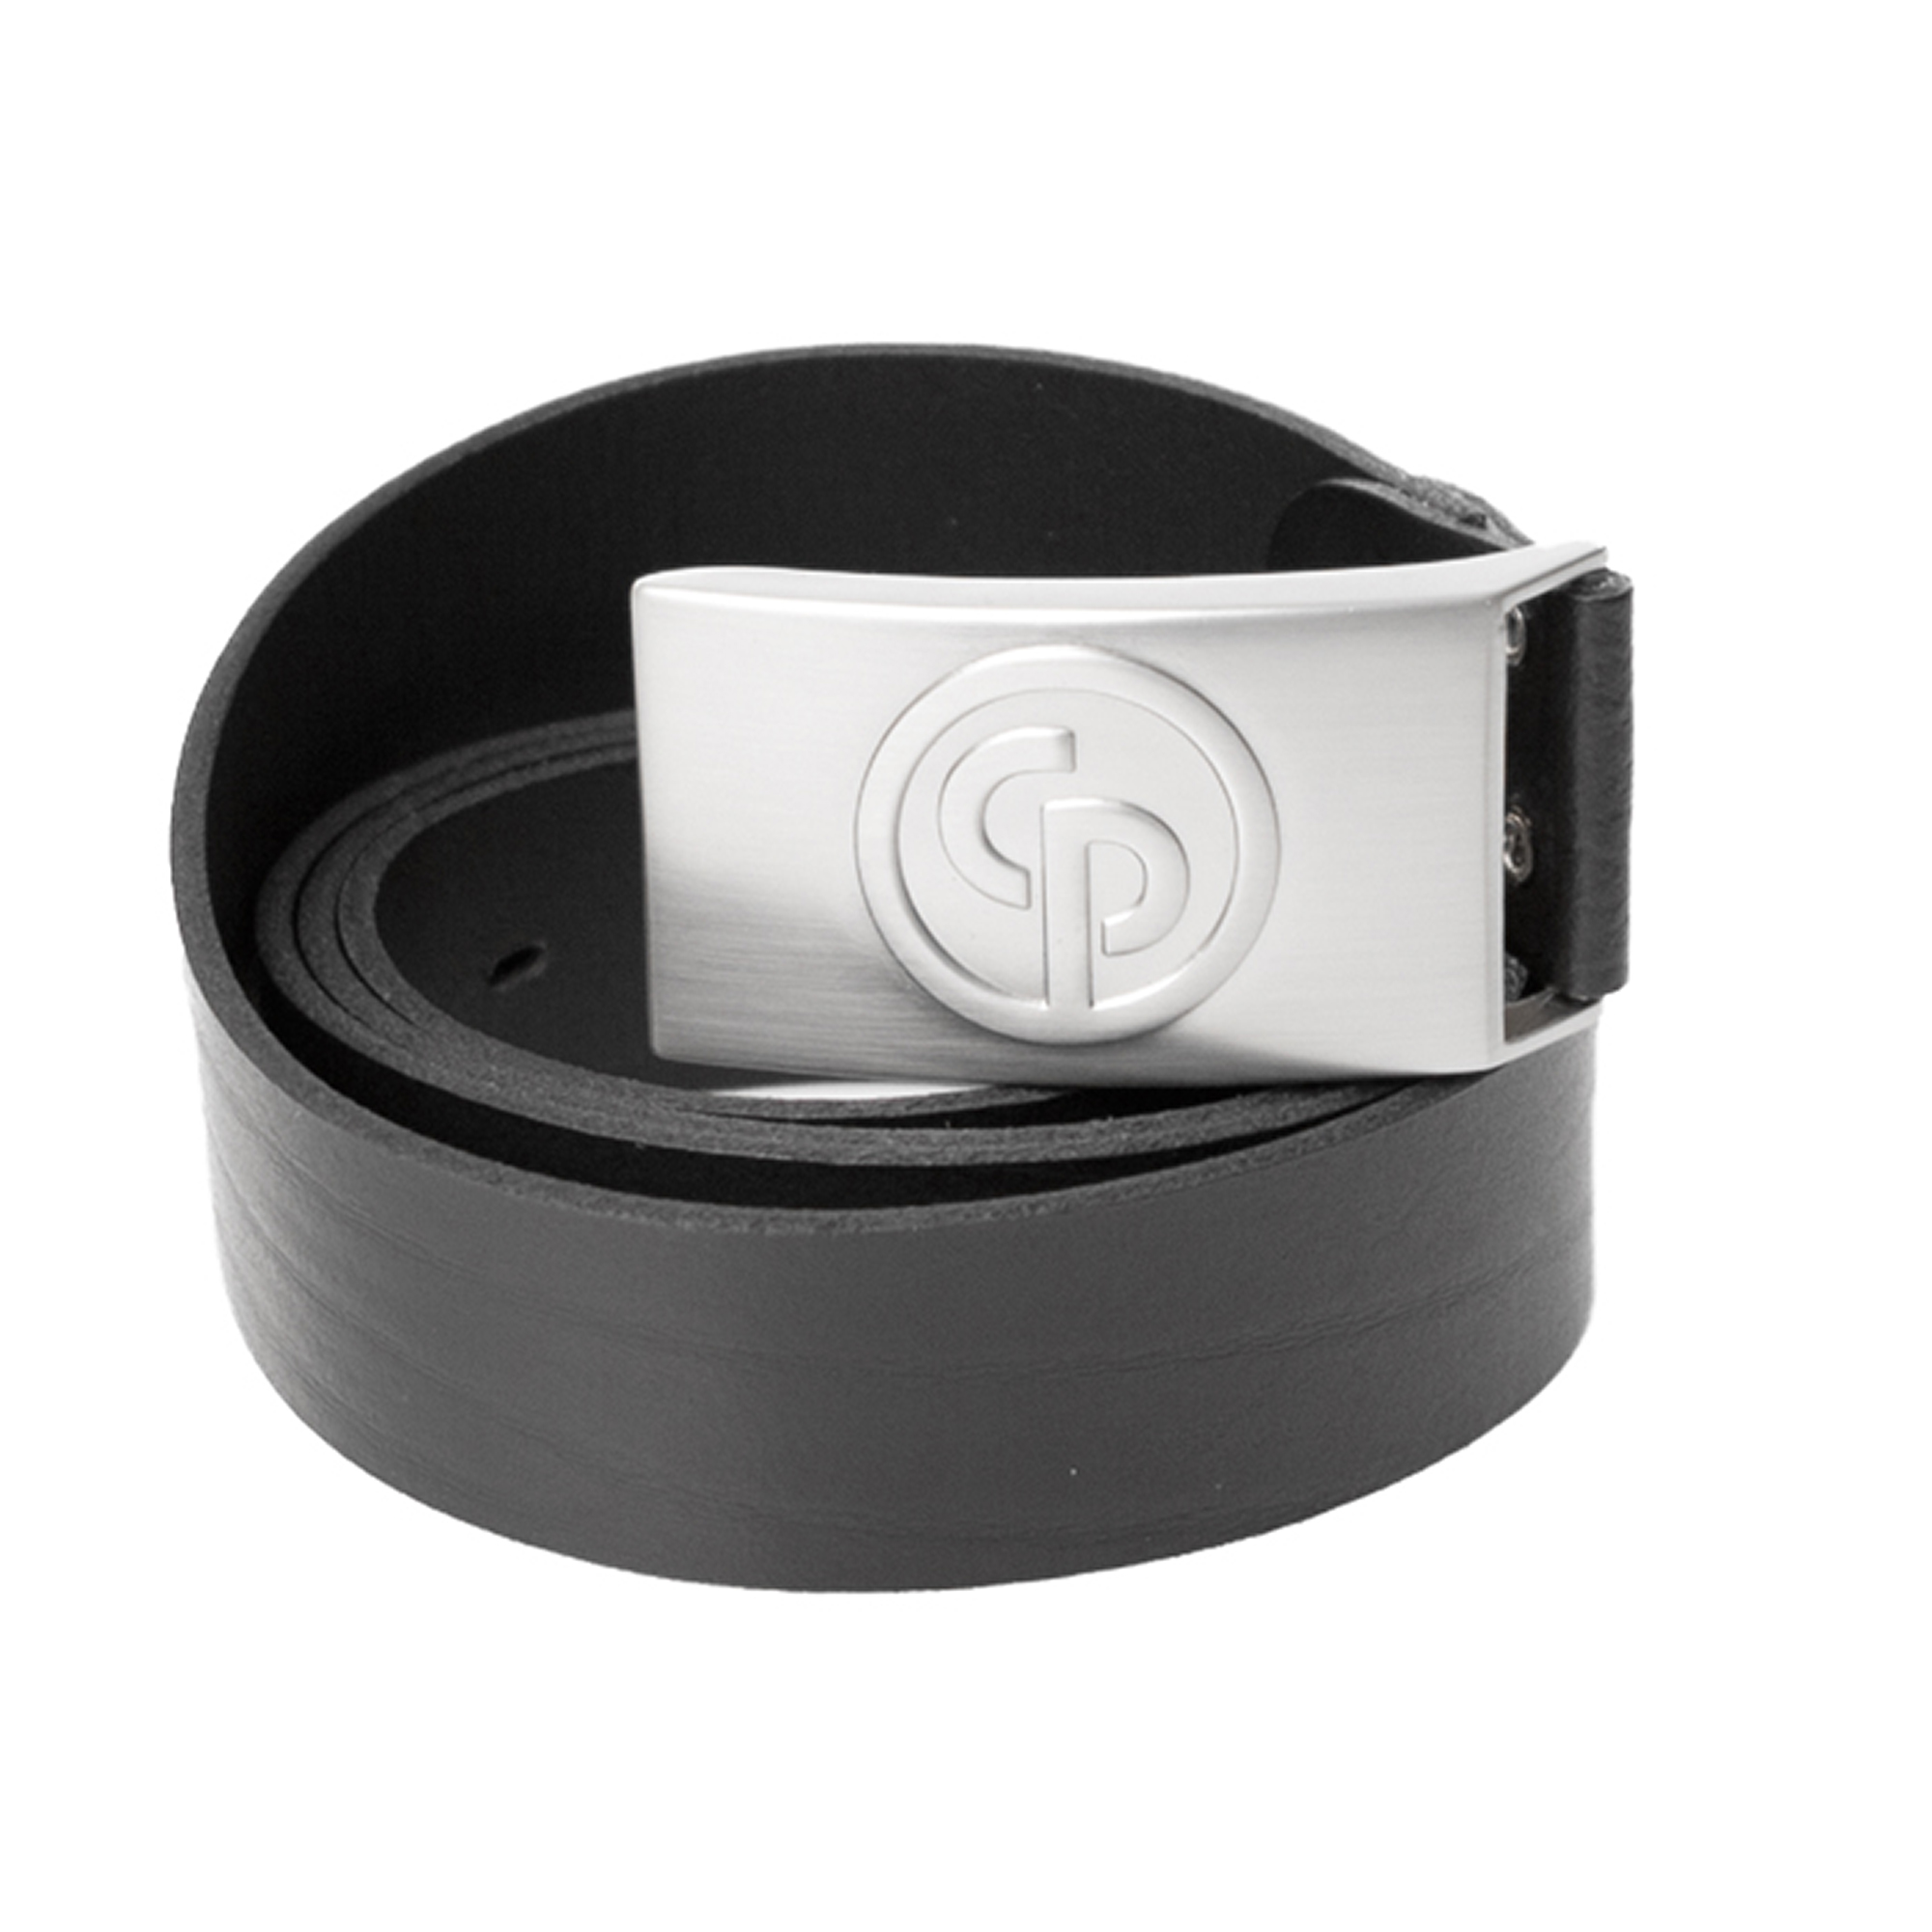 Leather belt in genuine calf leather. Designed metal buckle with an embossed CP logo. The belt is adjustable in length. Delivered in a black cotton pouch.